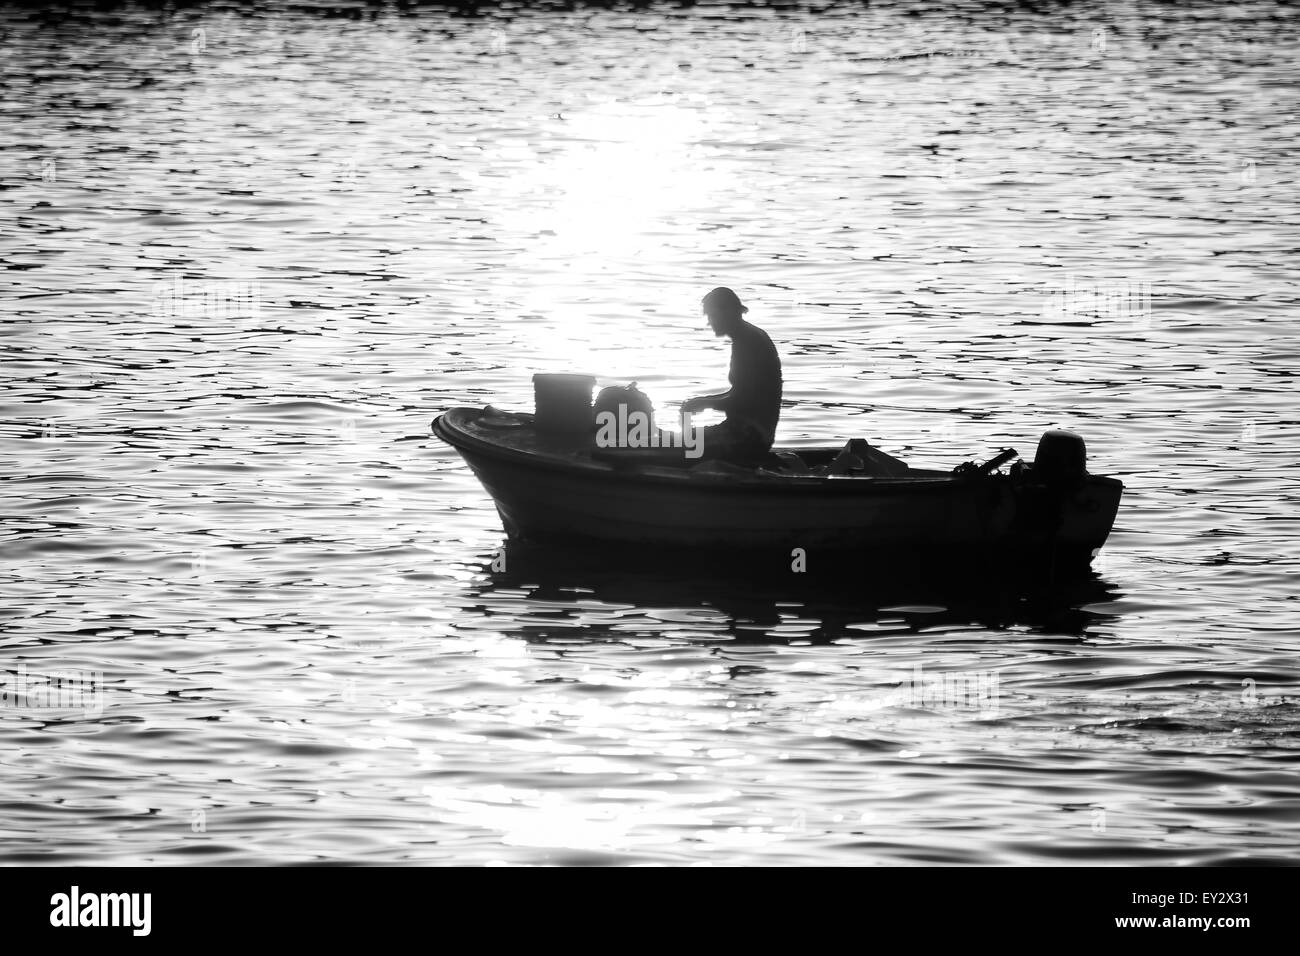 A fisherman in a motor boat fishing in the Adriatic sea at sunset on in Rovinj, Croatia. - Stock Image